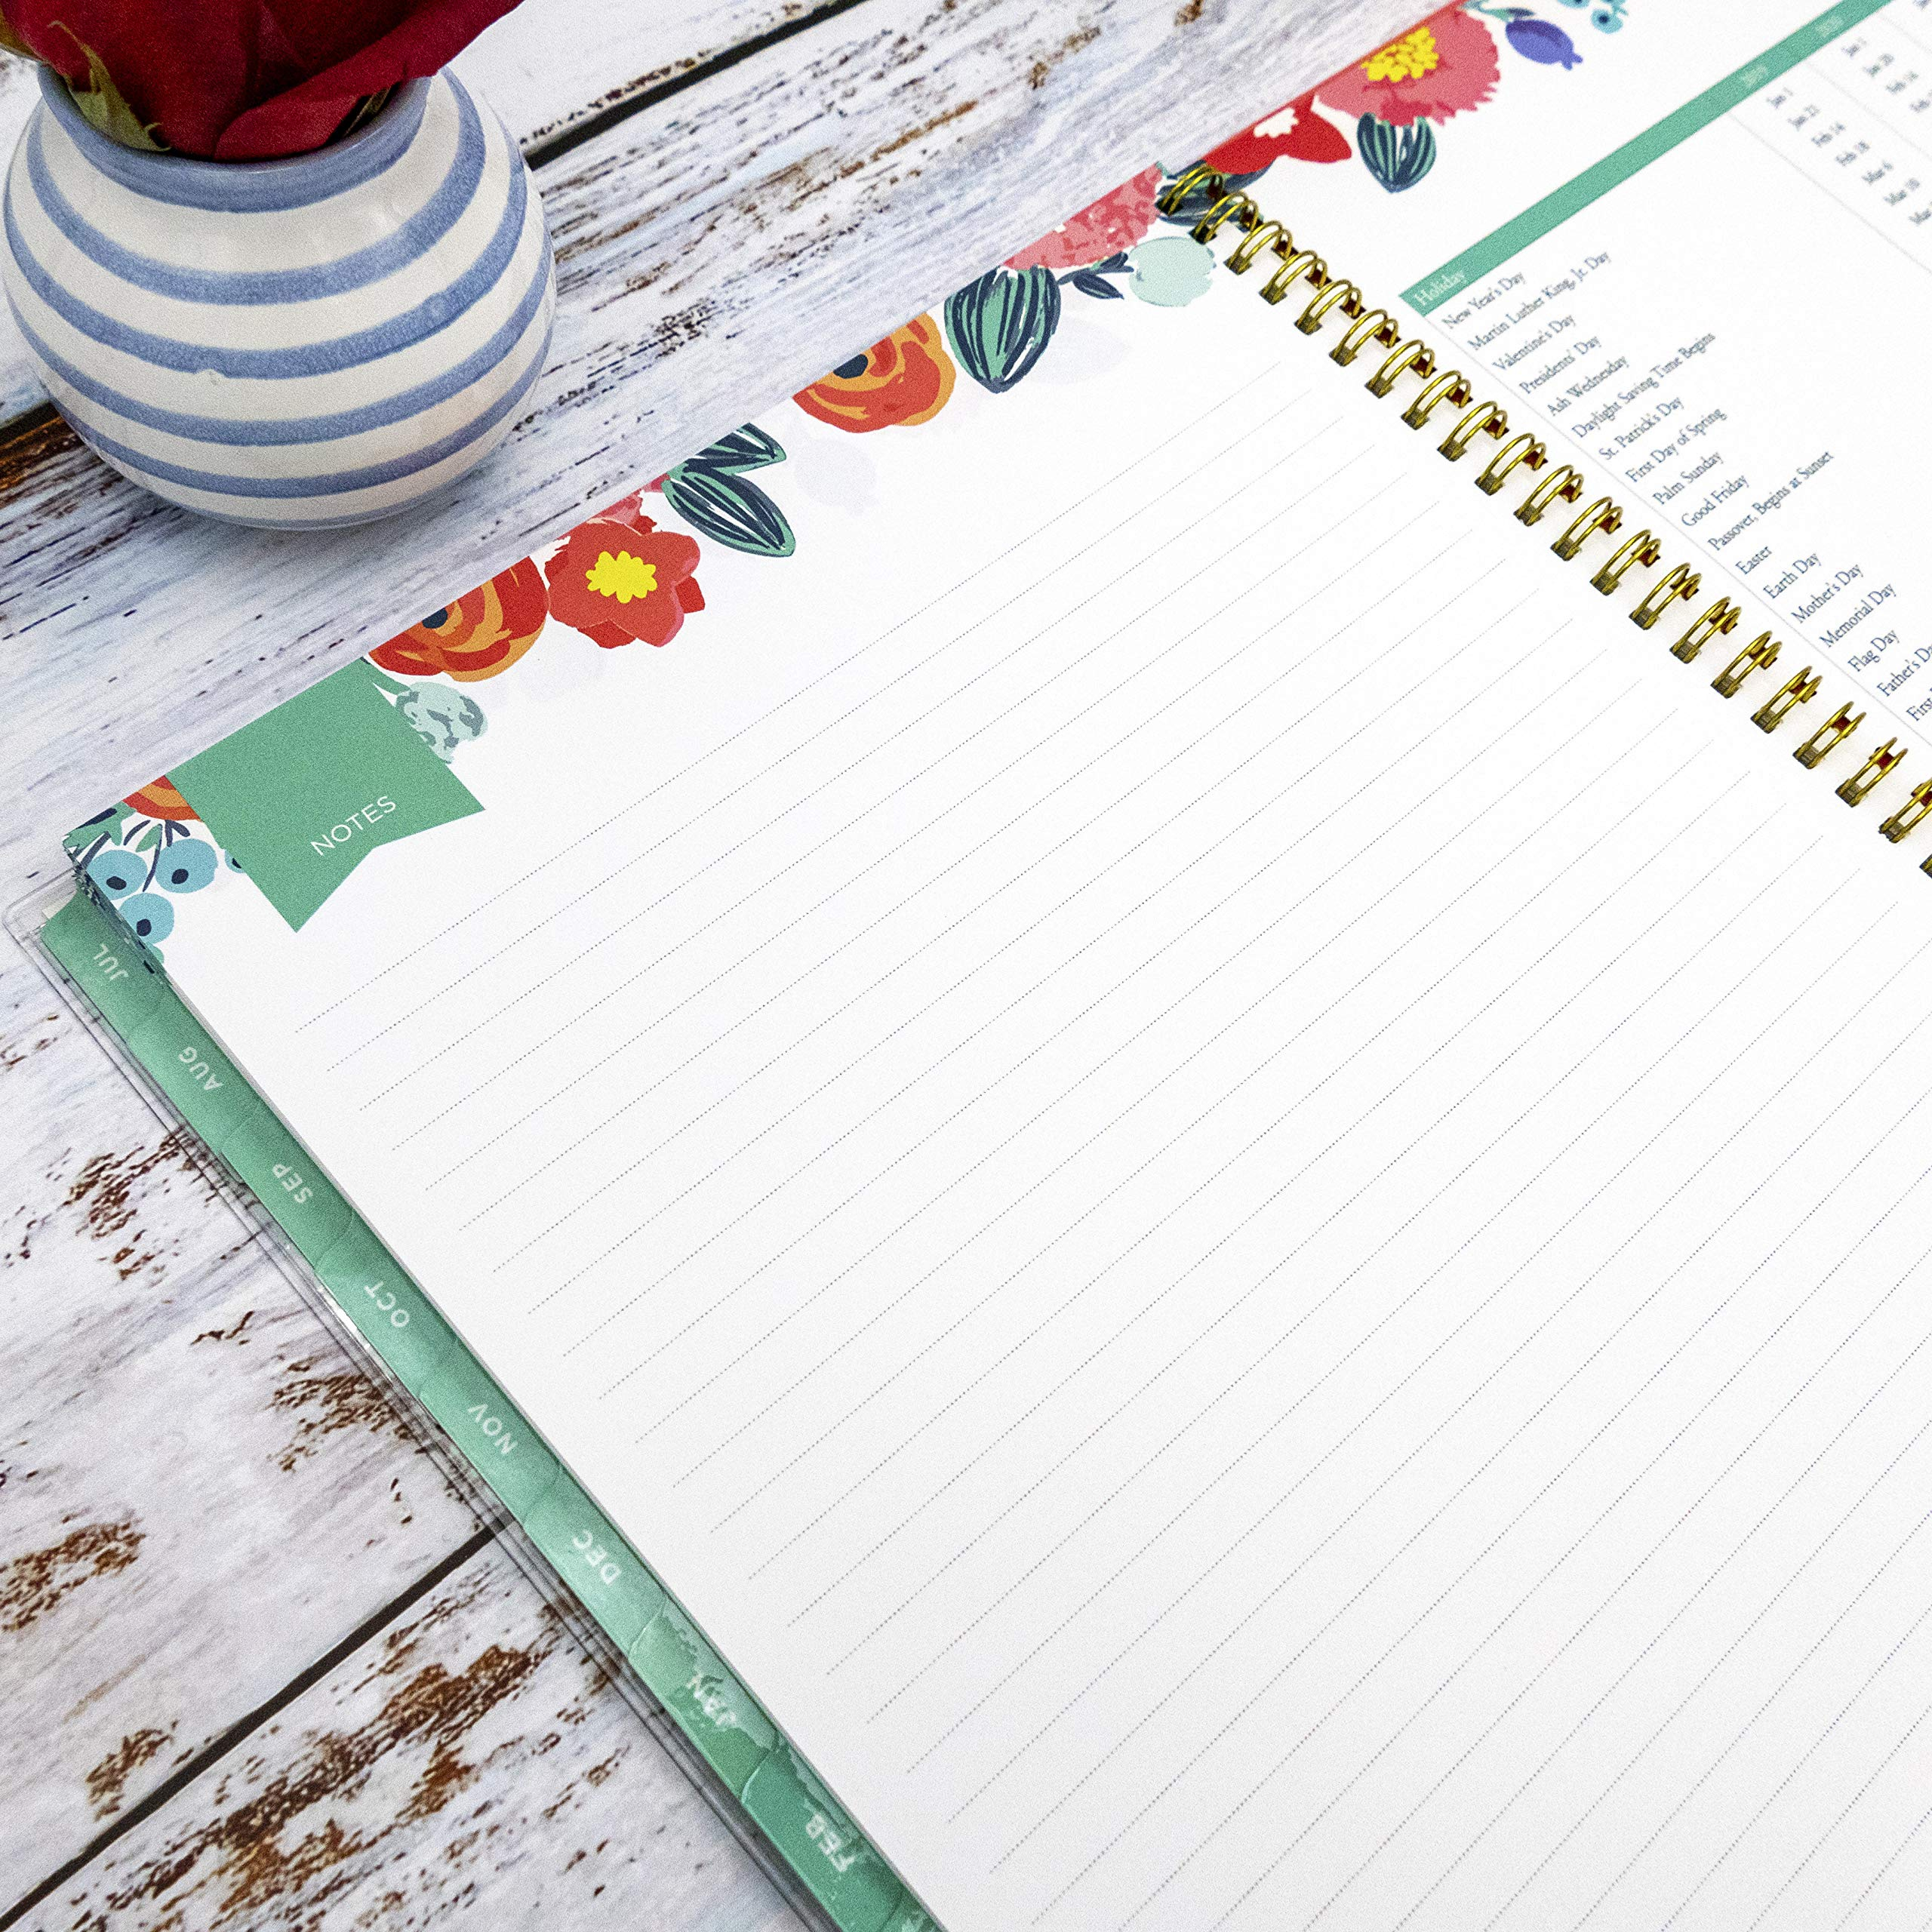 Day Designer for Blue Sky 2019-2020 Academic Year Weekly & Monthly Planner, Flexible Cover, Twin-Wire Binding, 8.5'' x 11'', Floral Sketch by Blue Sky (Image #6)